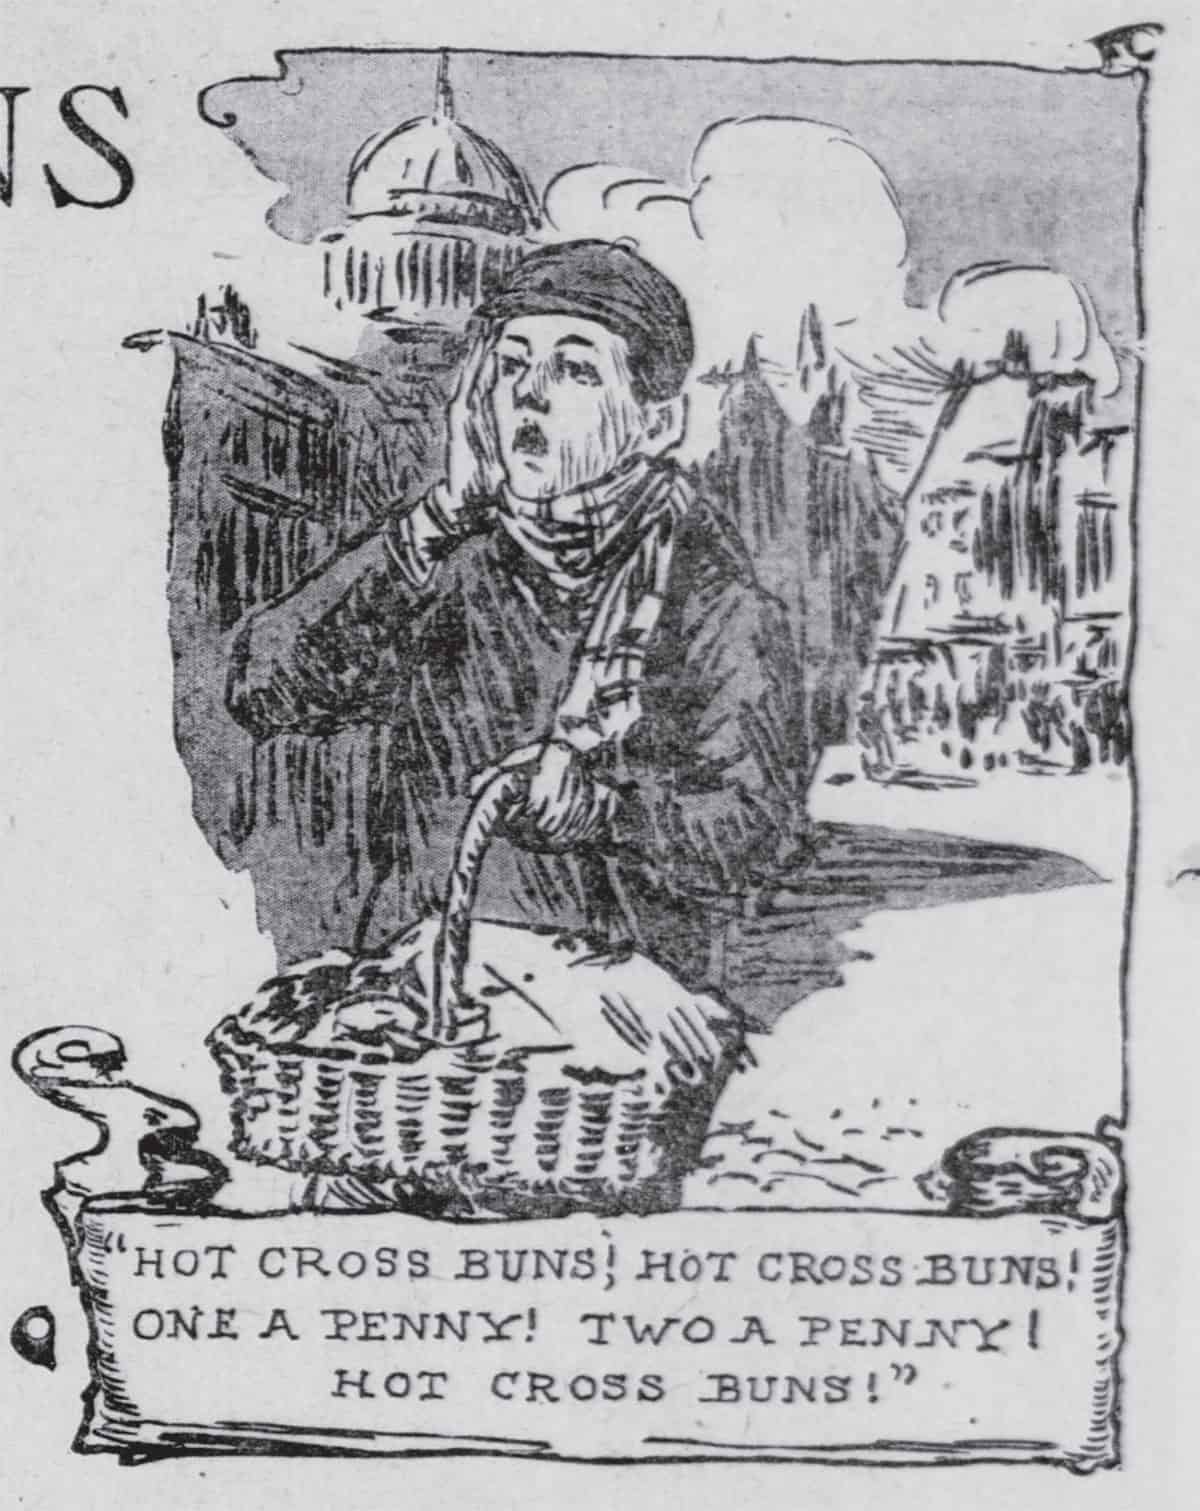 Hot Cross Buns Street Seller image from The San Francisco Call - 06 Feb 1910